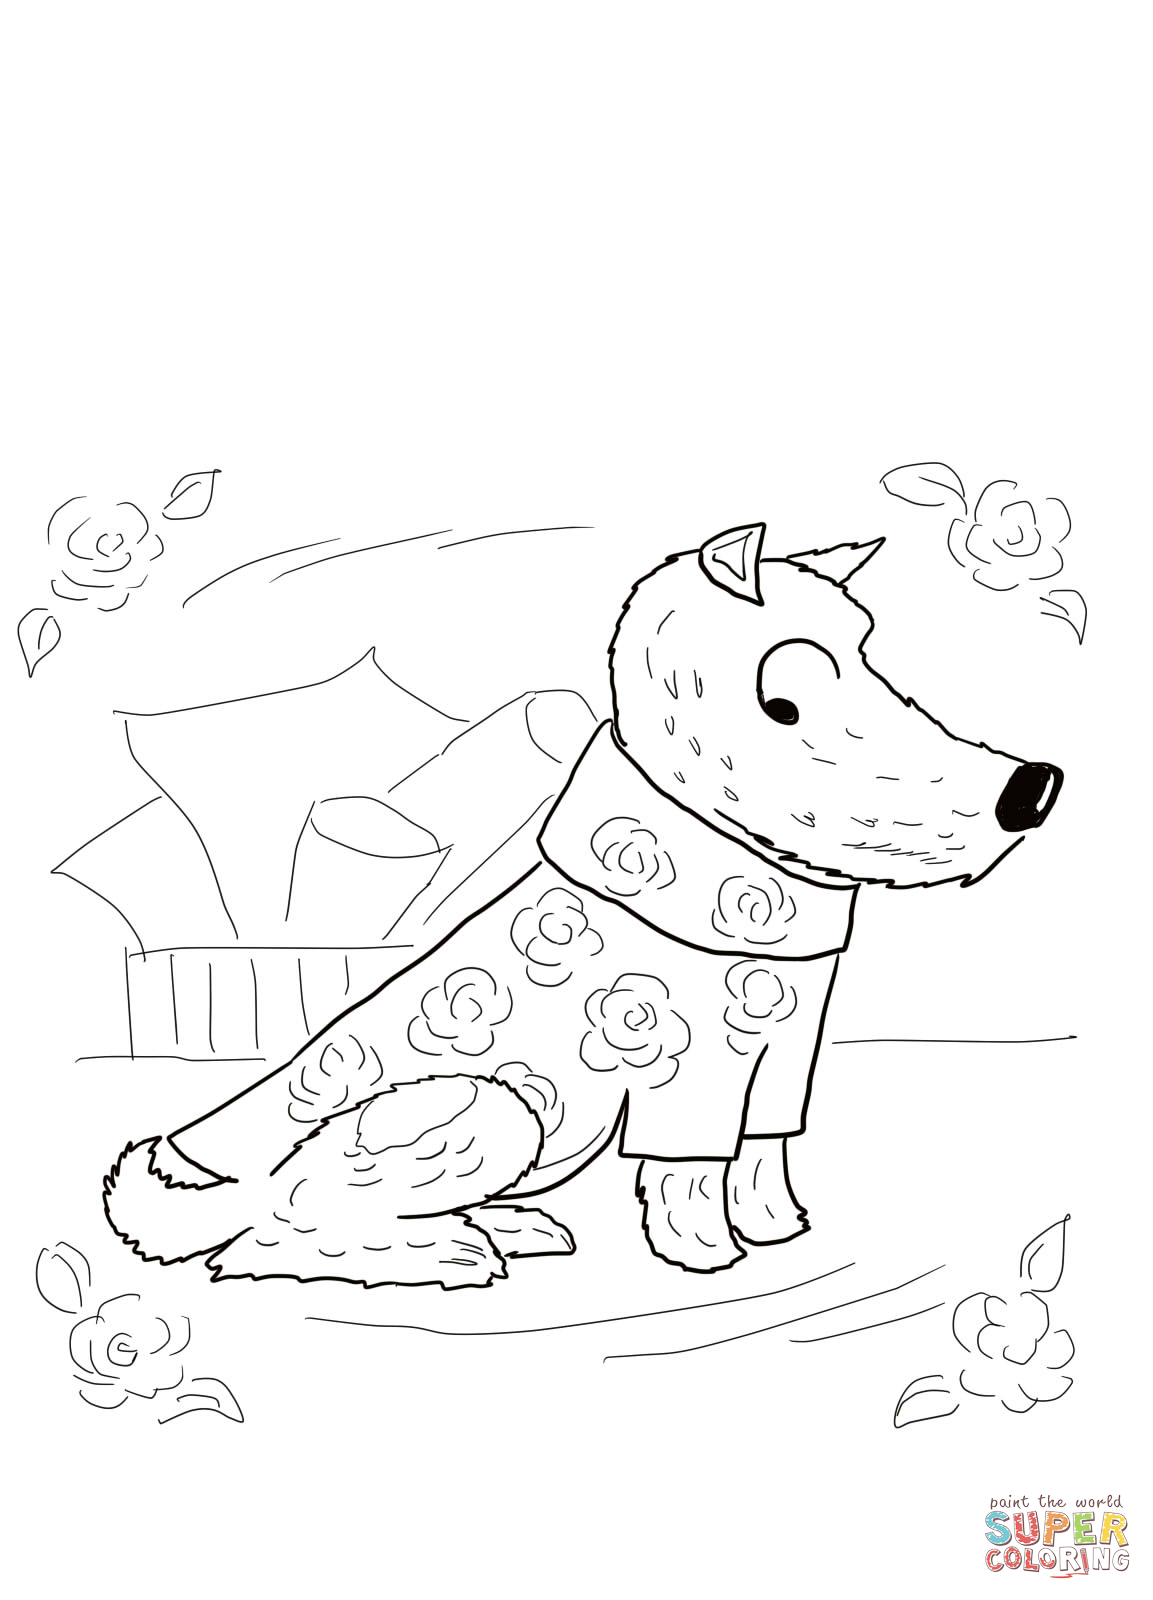 dirty coloring pages - photo#9